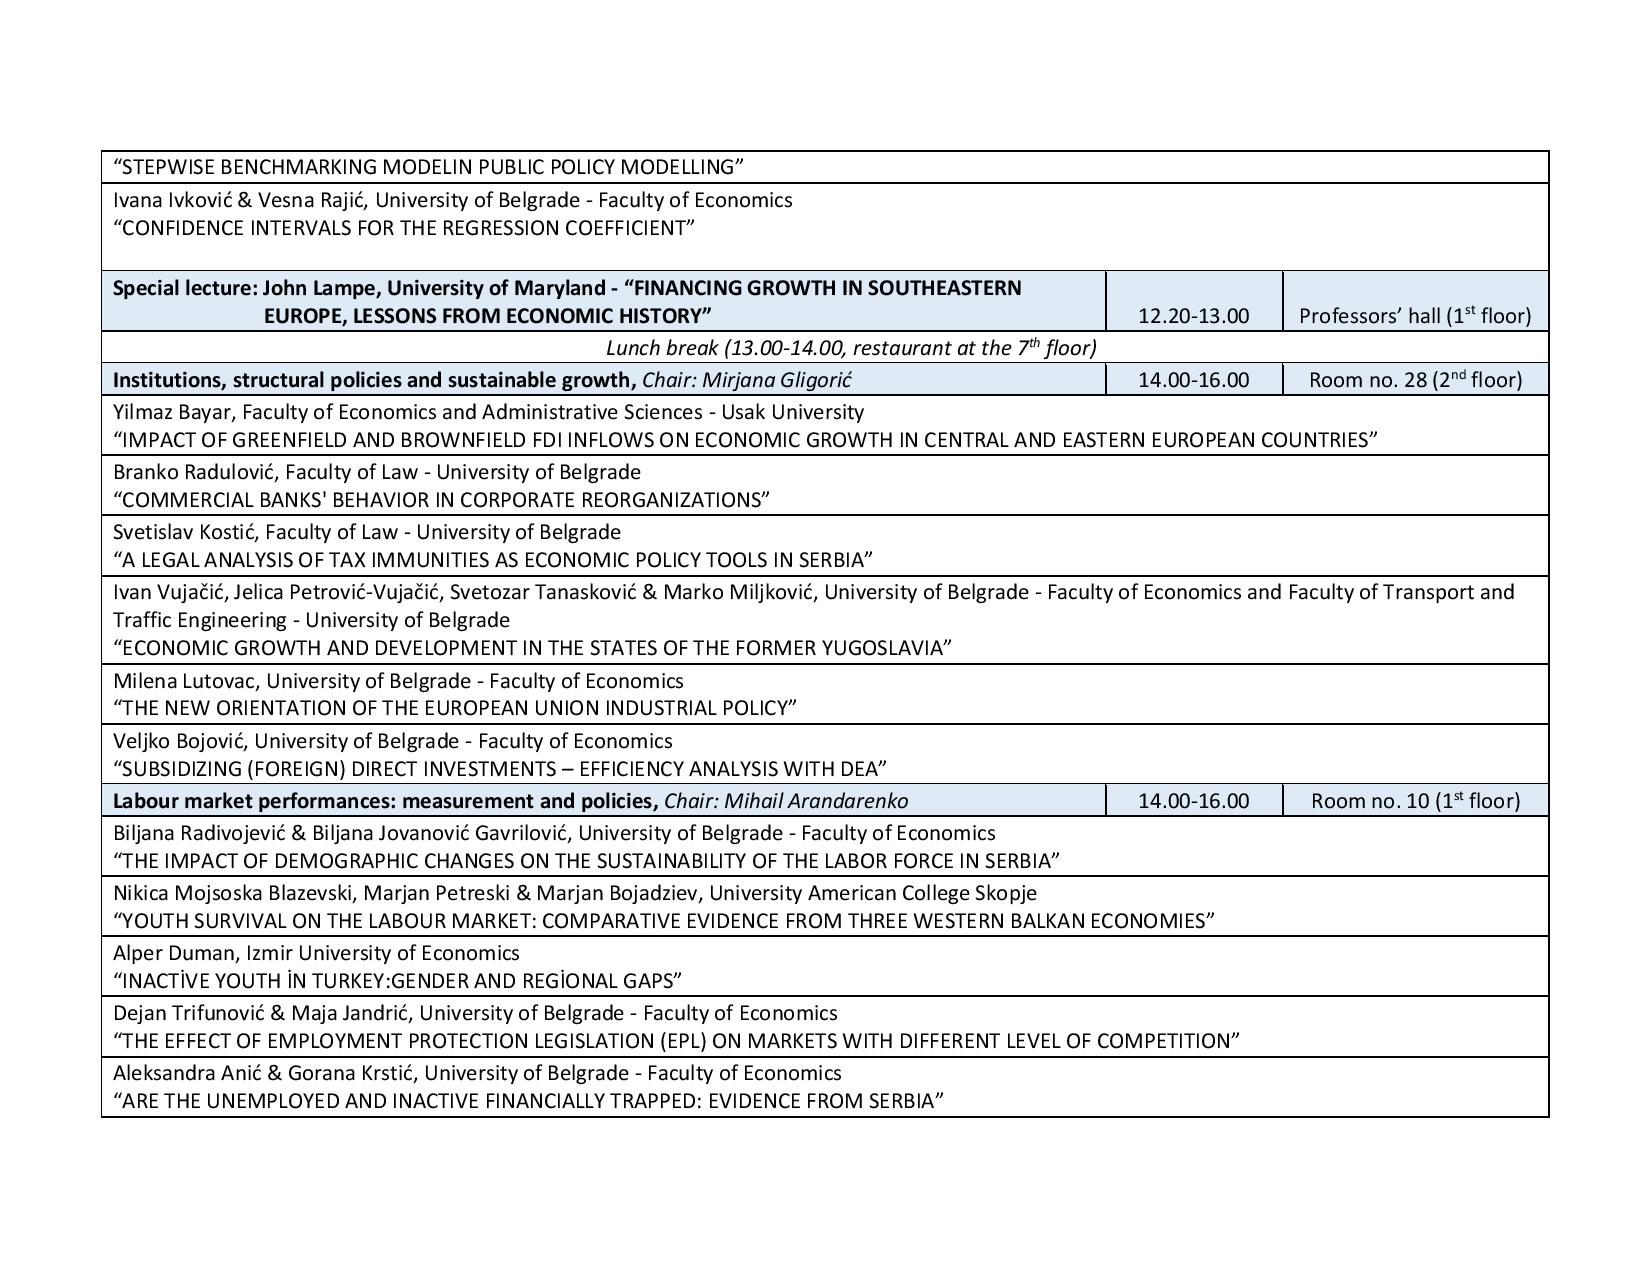 Conference program_Faculty of Economics (University of Belgrade)_draft-page-006